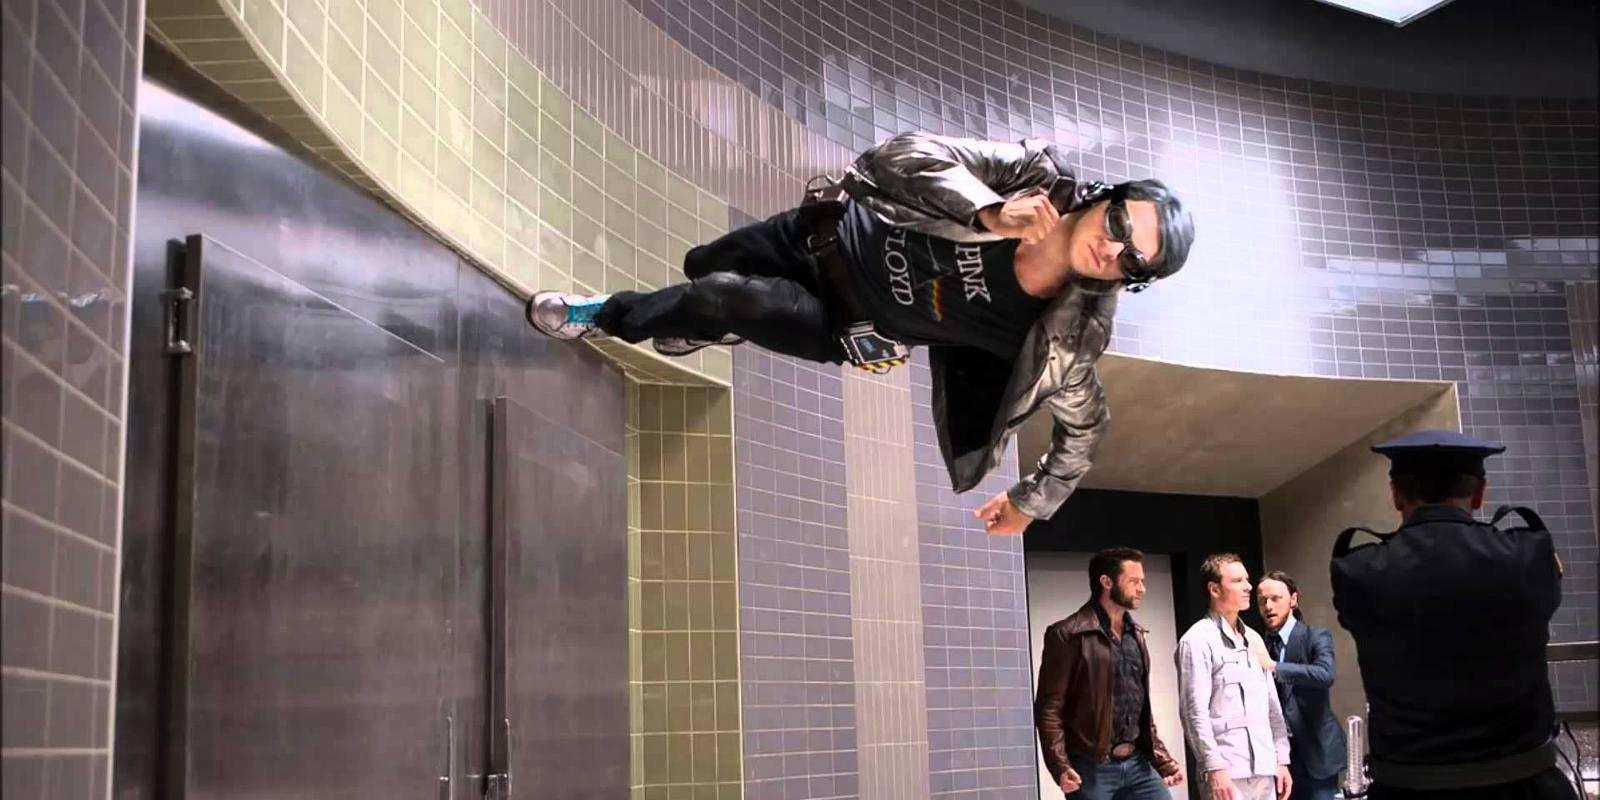 Quicksilver (Evan Peters) in X-Men: Days of Future Past (2014)